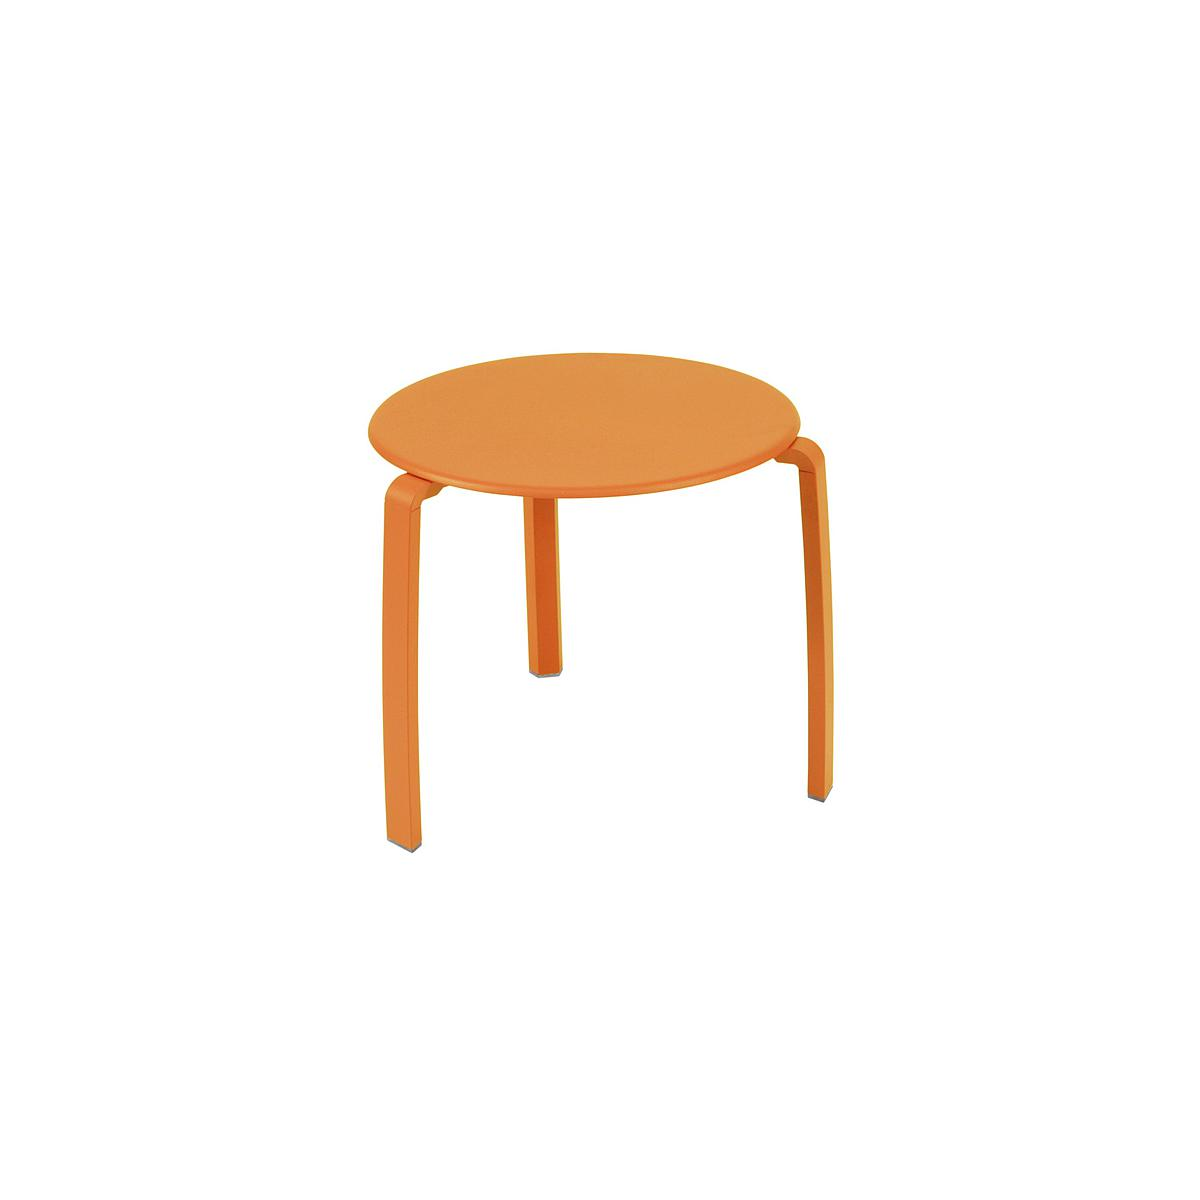 ALIZE by Fermob Table basse Orange carotte